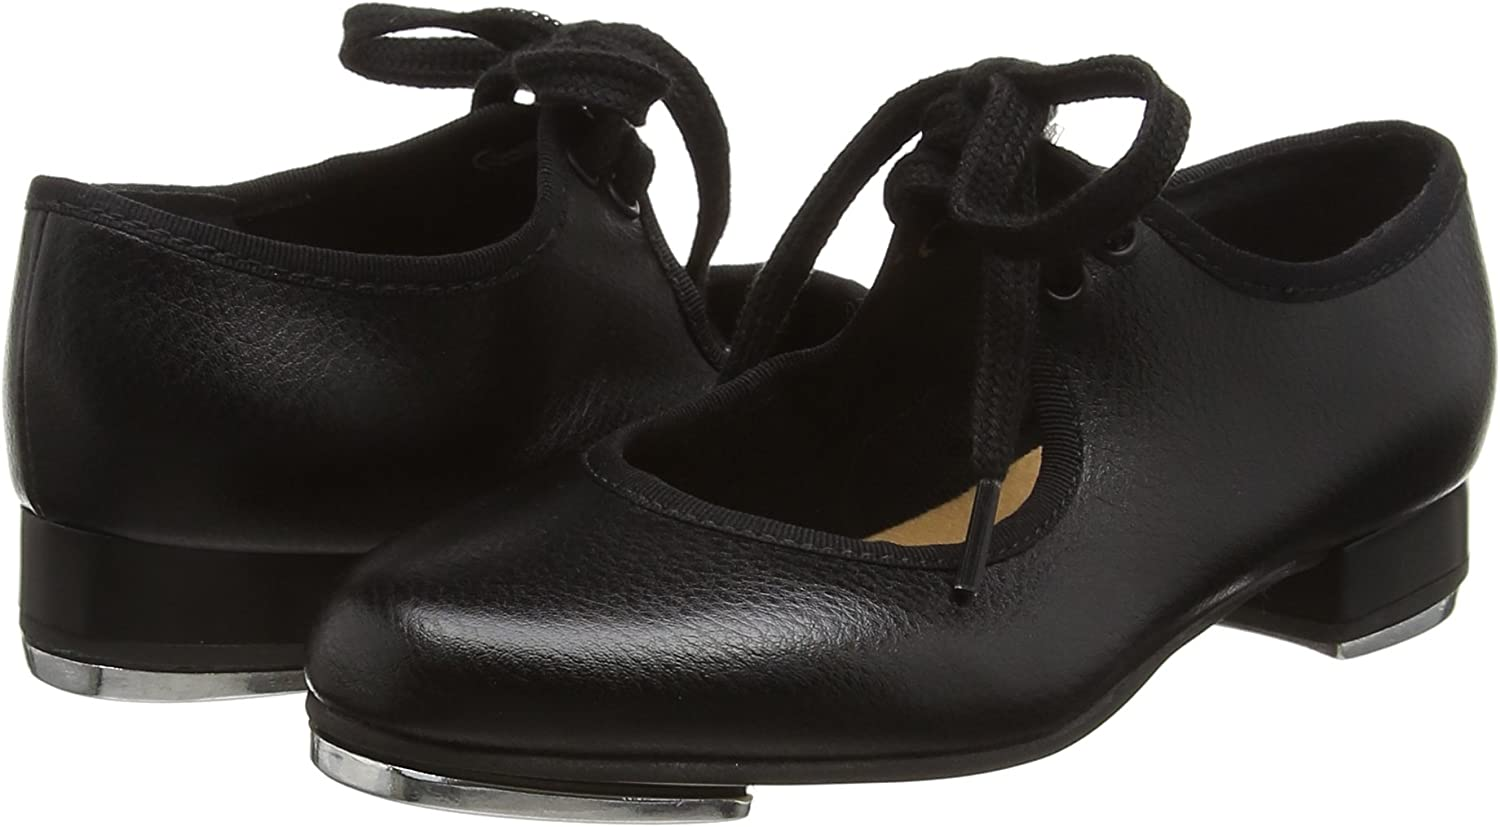 Bloch Womens Timestep Tap Dancing Shoes